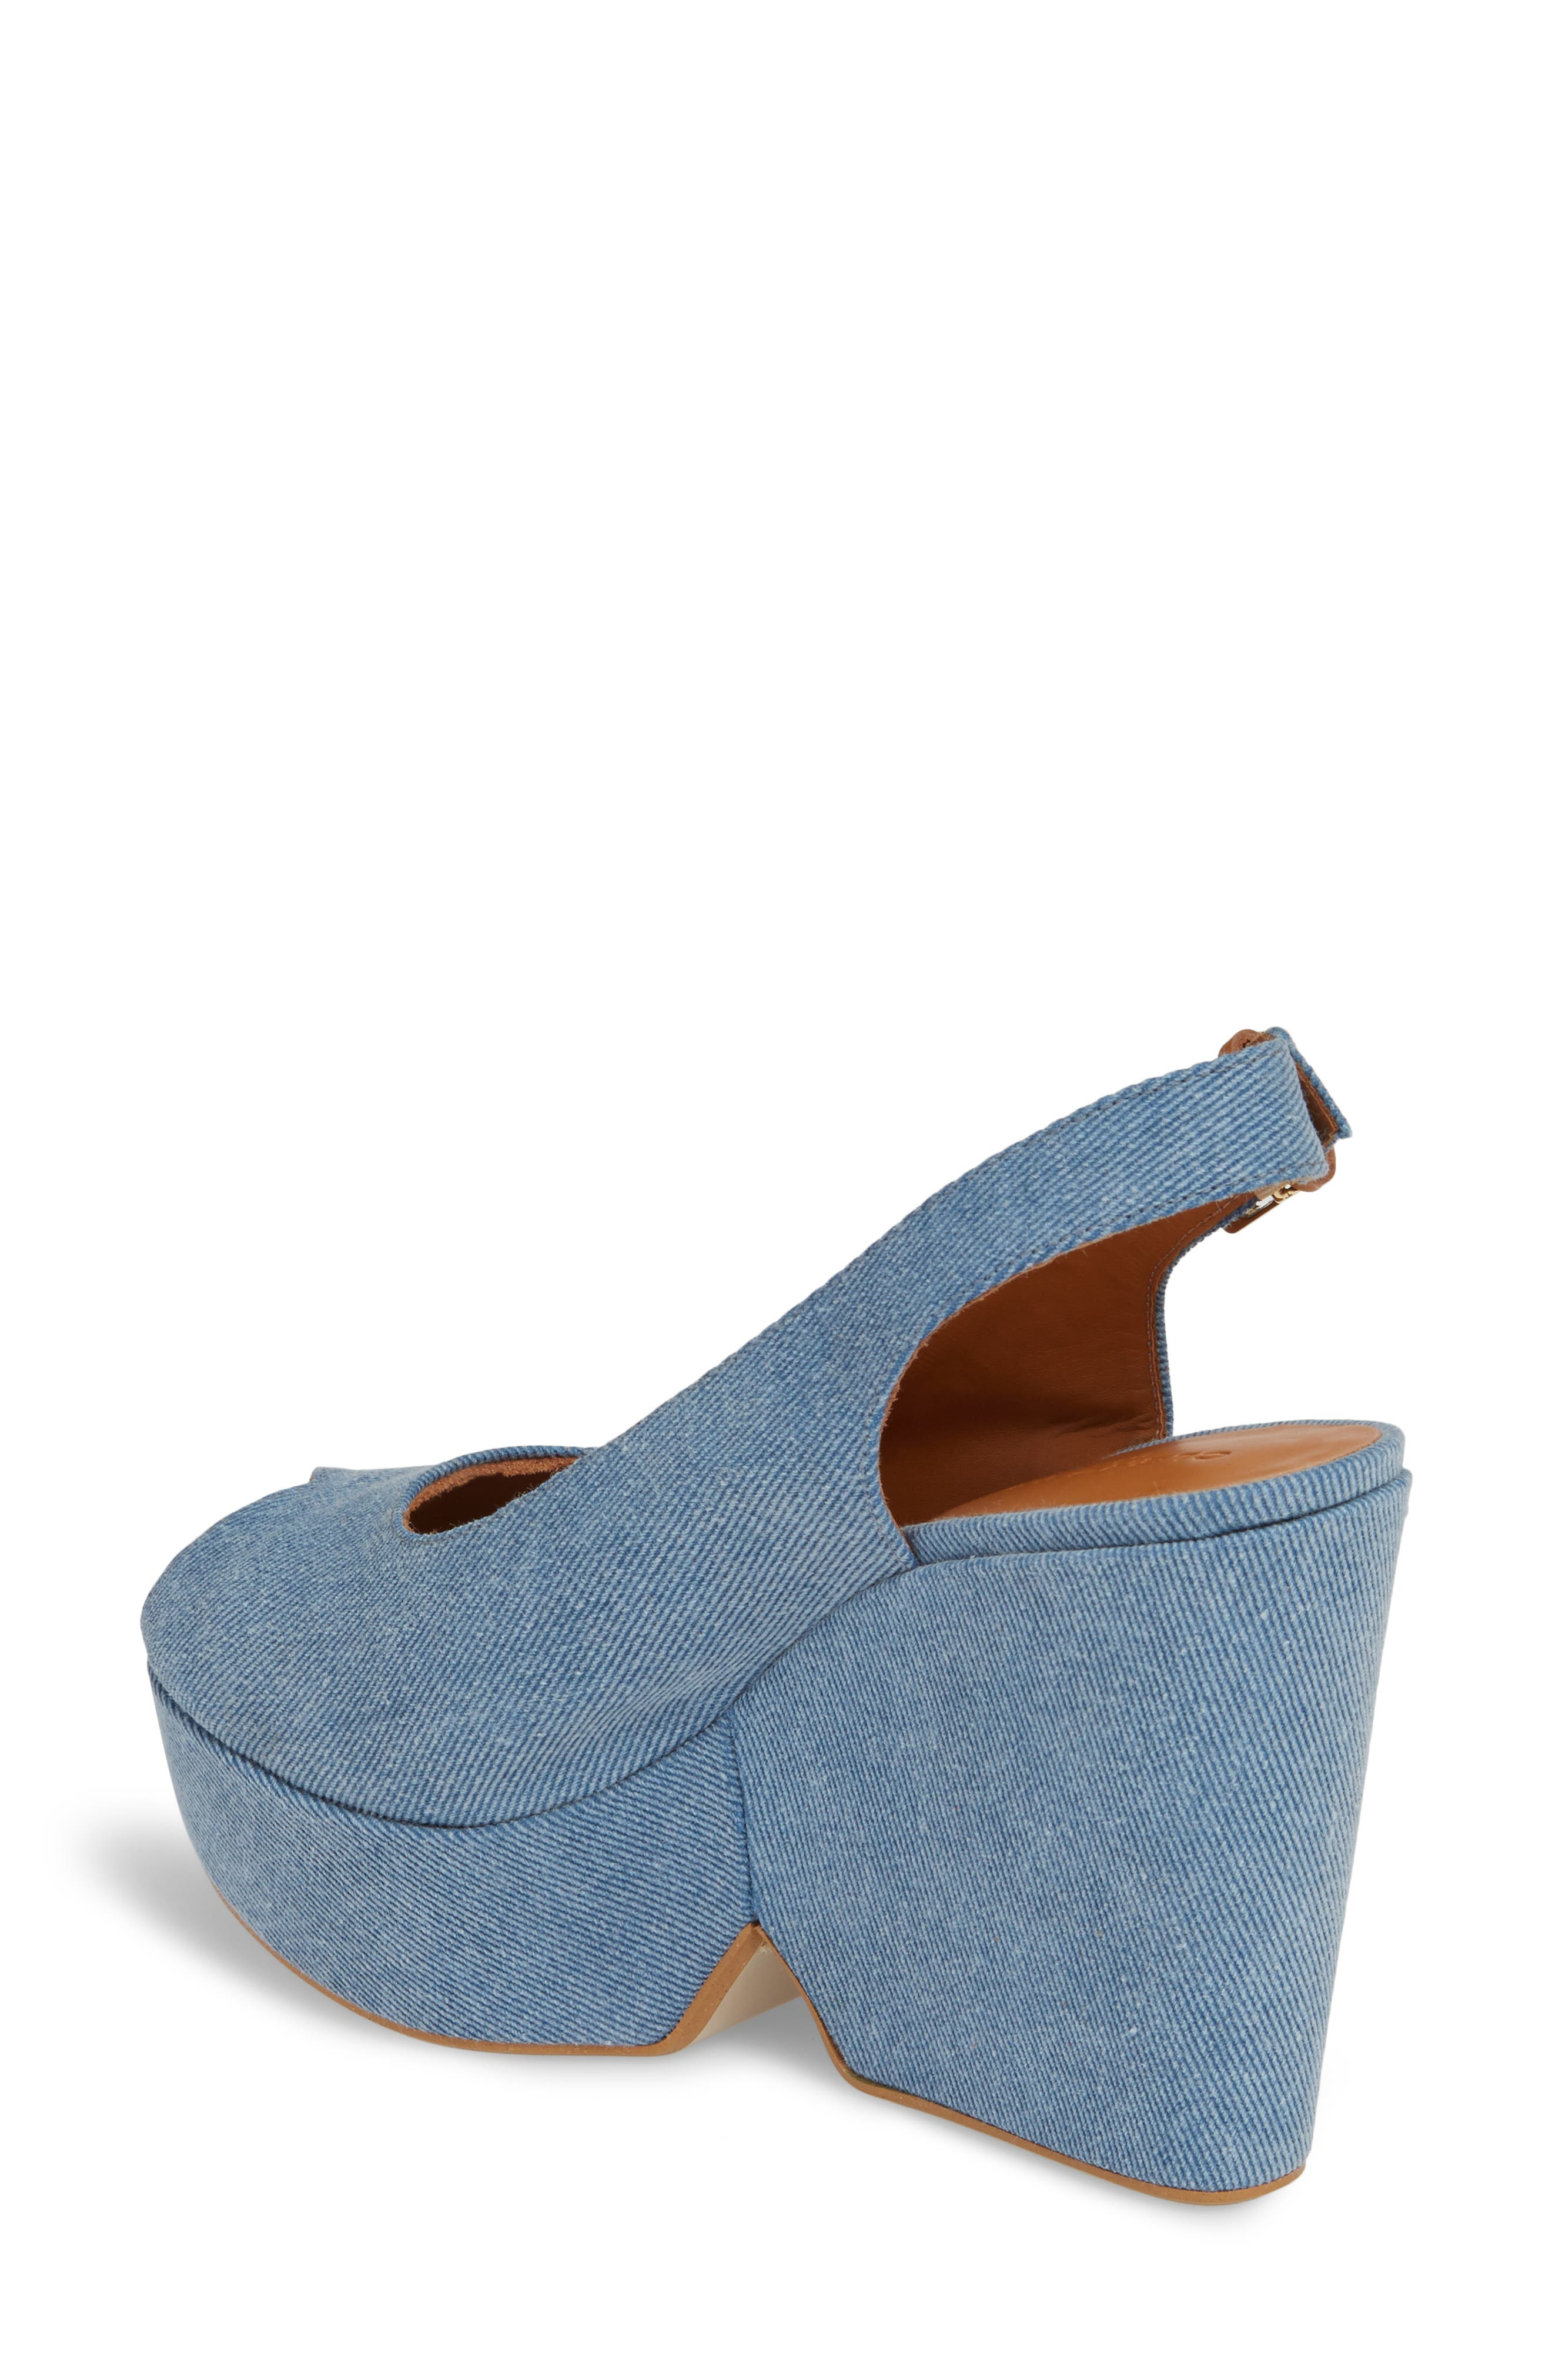 Alternate Image 2  - Robert Clergerie Dylanto Platform Wedge Sandal (Women)